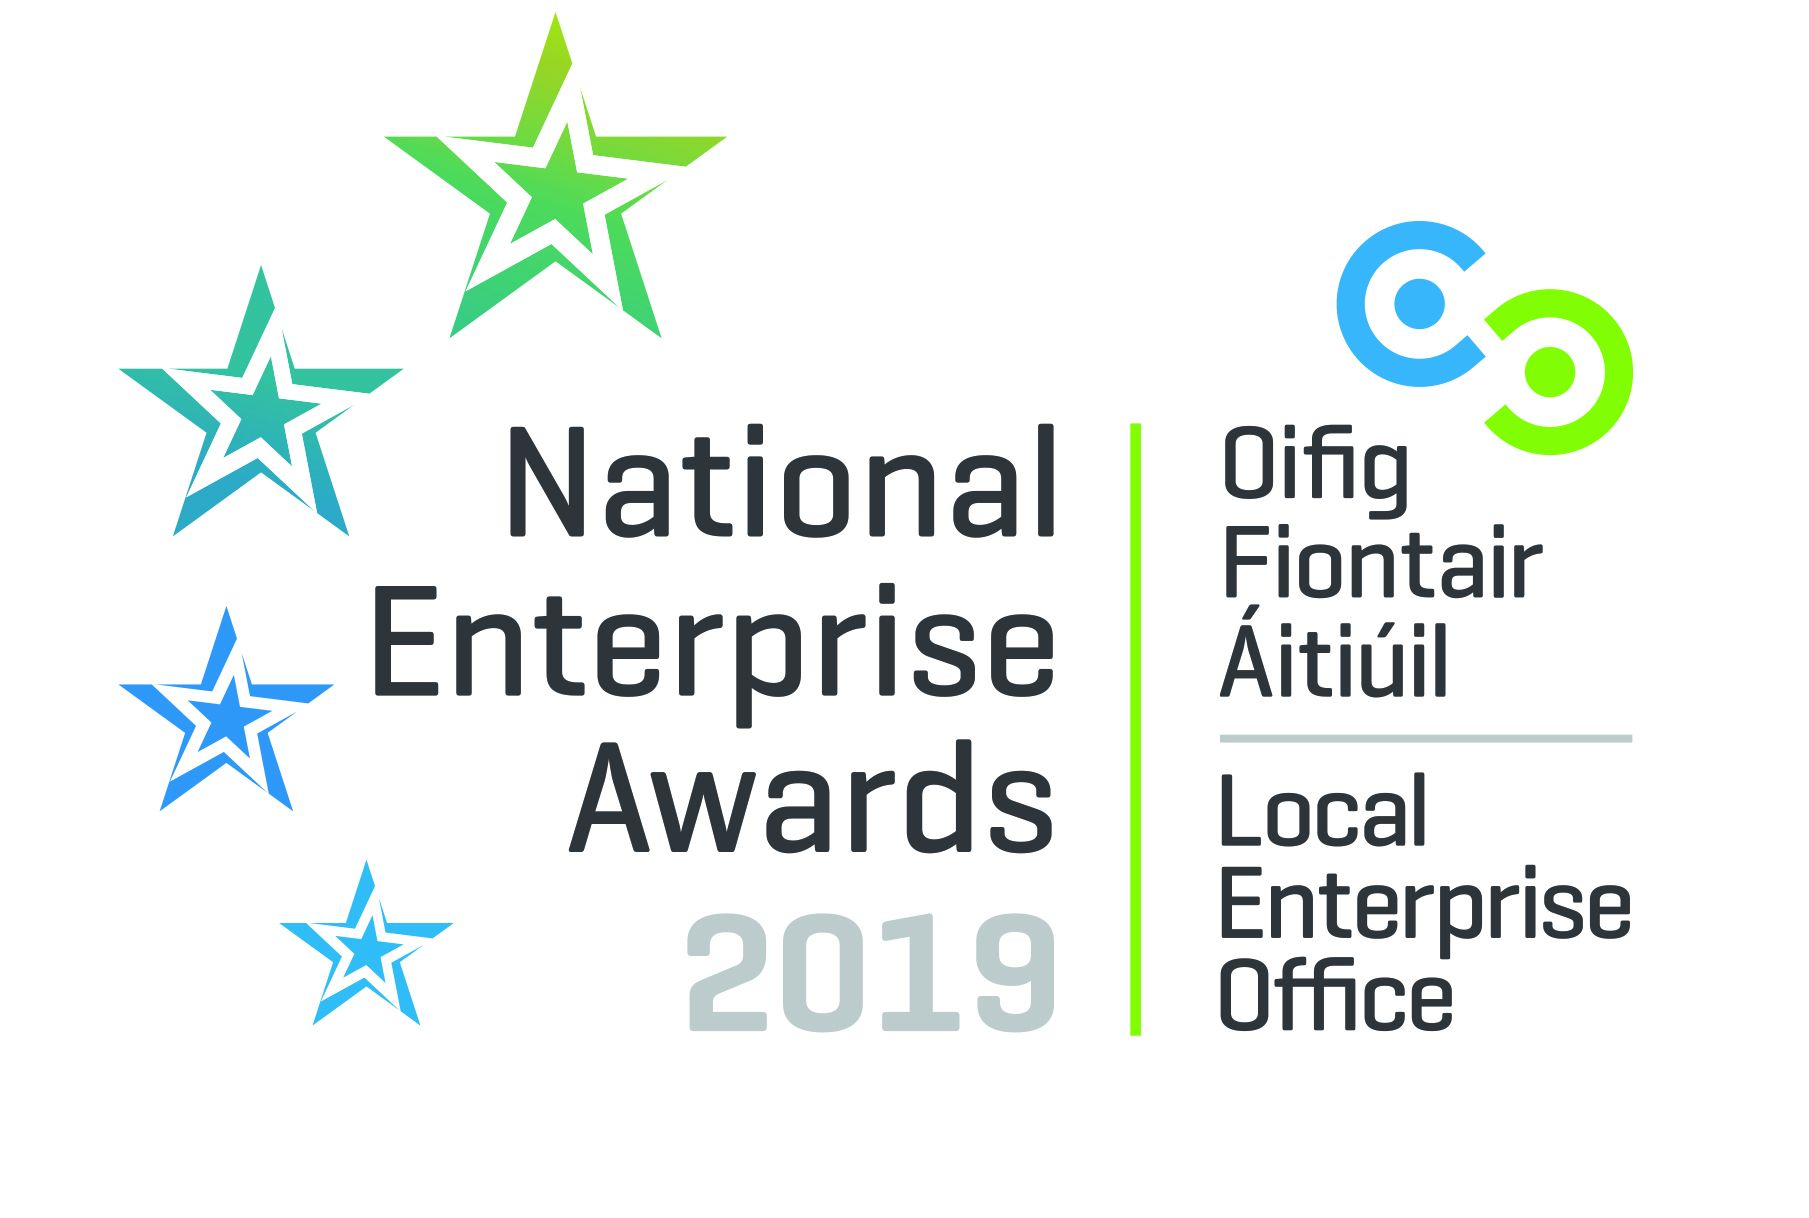 National Enterprise Awards